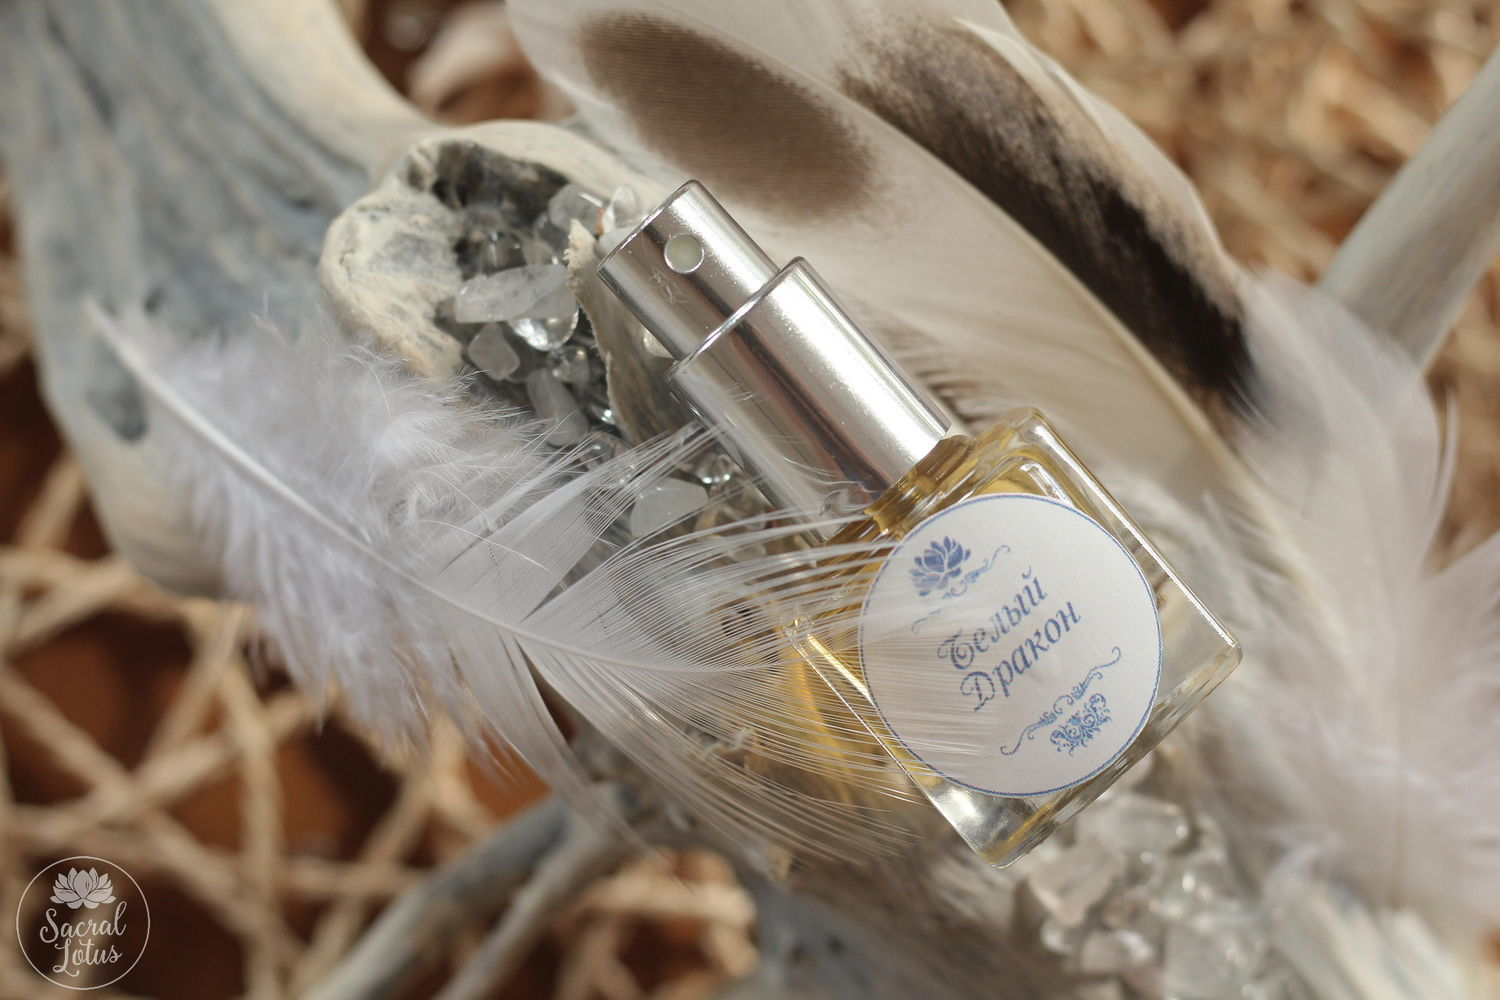 White Dragon, the Ethereal essence, Perfume, Goryachy Klyuch,  Фото №1